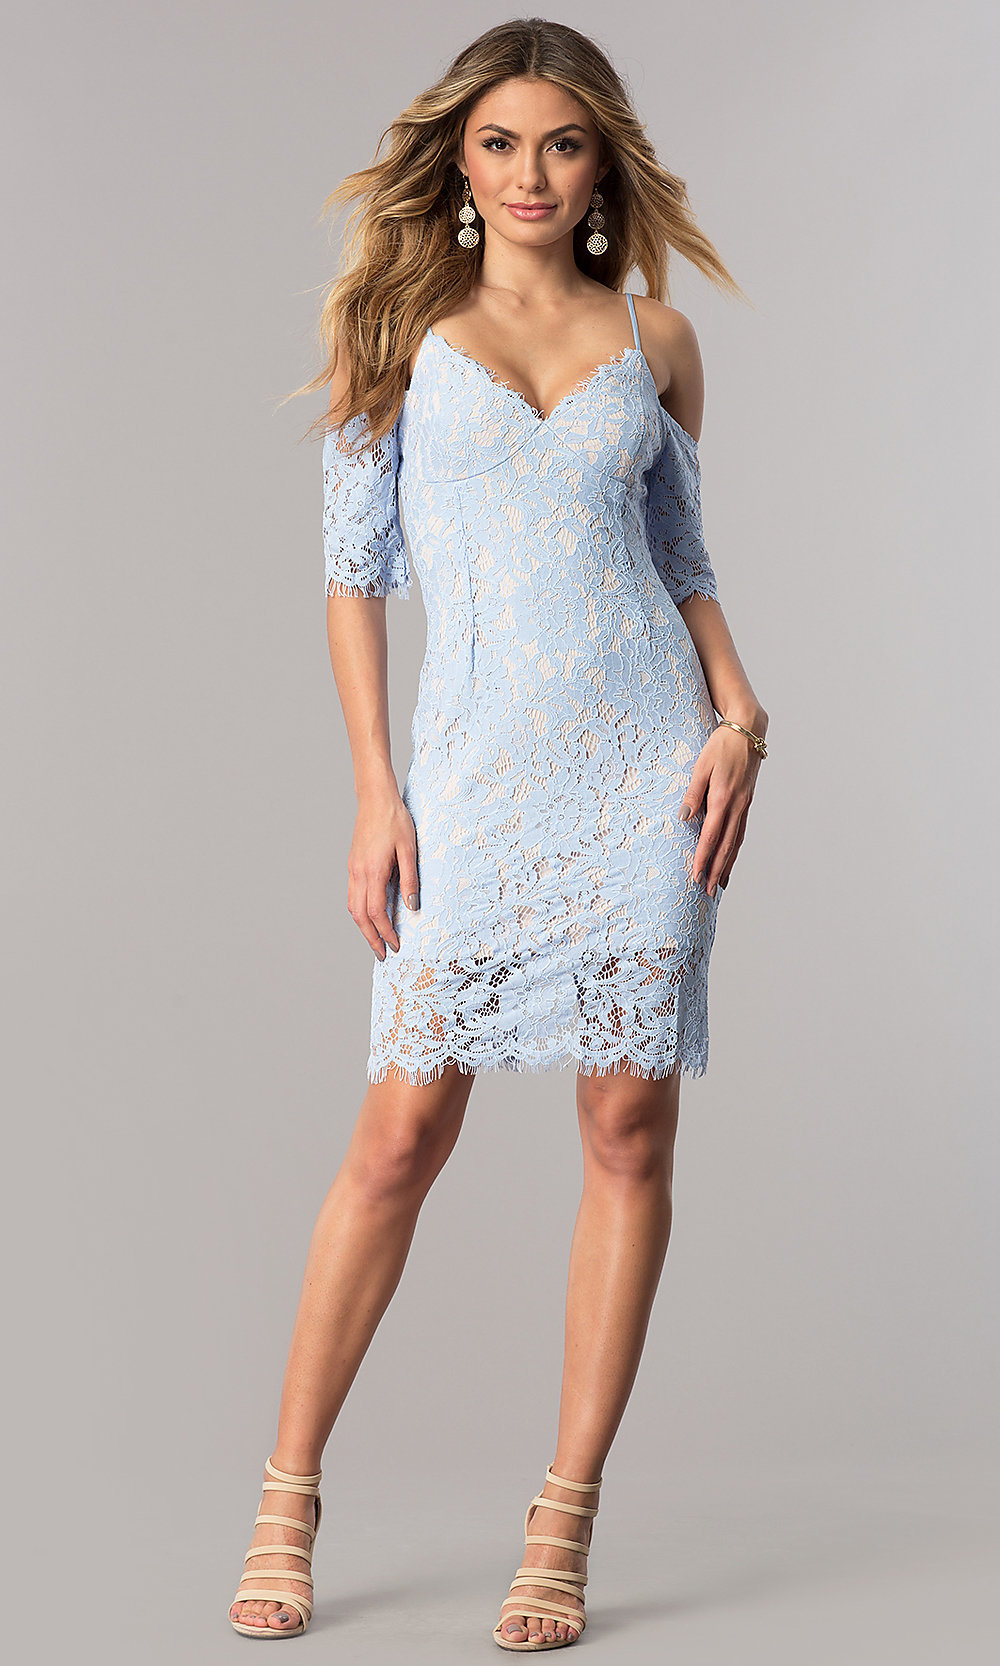 Cold-Shoulder Ice Blue Lace Party Dress - PromGirl